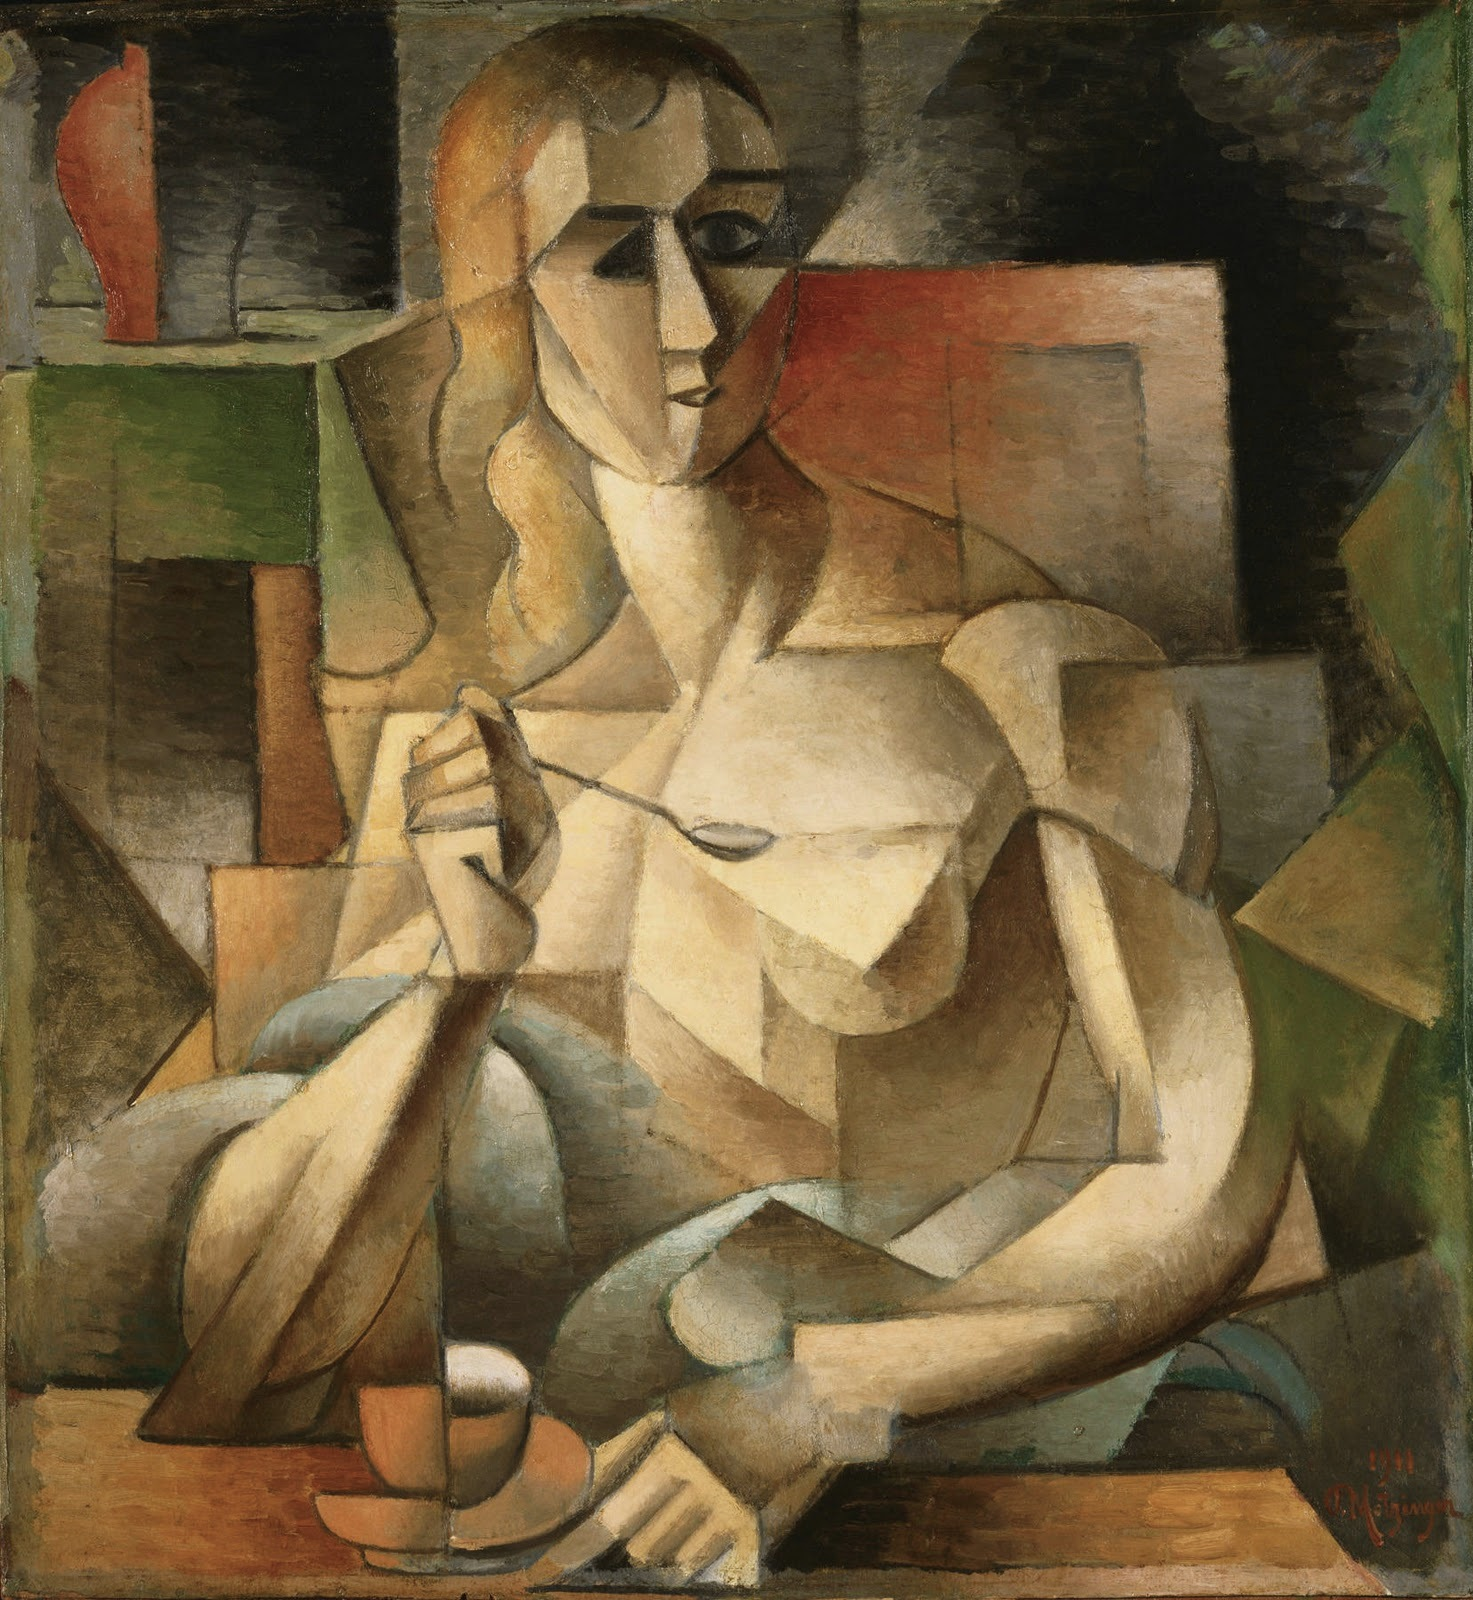 Abstract 19th Century Artist - Jean_Metzinger%2C_Le_go%C3%BBter%2C_Tea_Time%2C_1911%2C_75_Good Abstract 19th Century Artist - Jean_Metzinger%2C_Le_go%C3%BBter%2C_Tea_Time%2C_1911%2C_75  Perfect Image Reference_124730.jpg